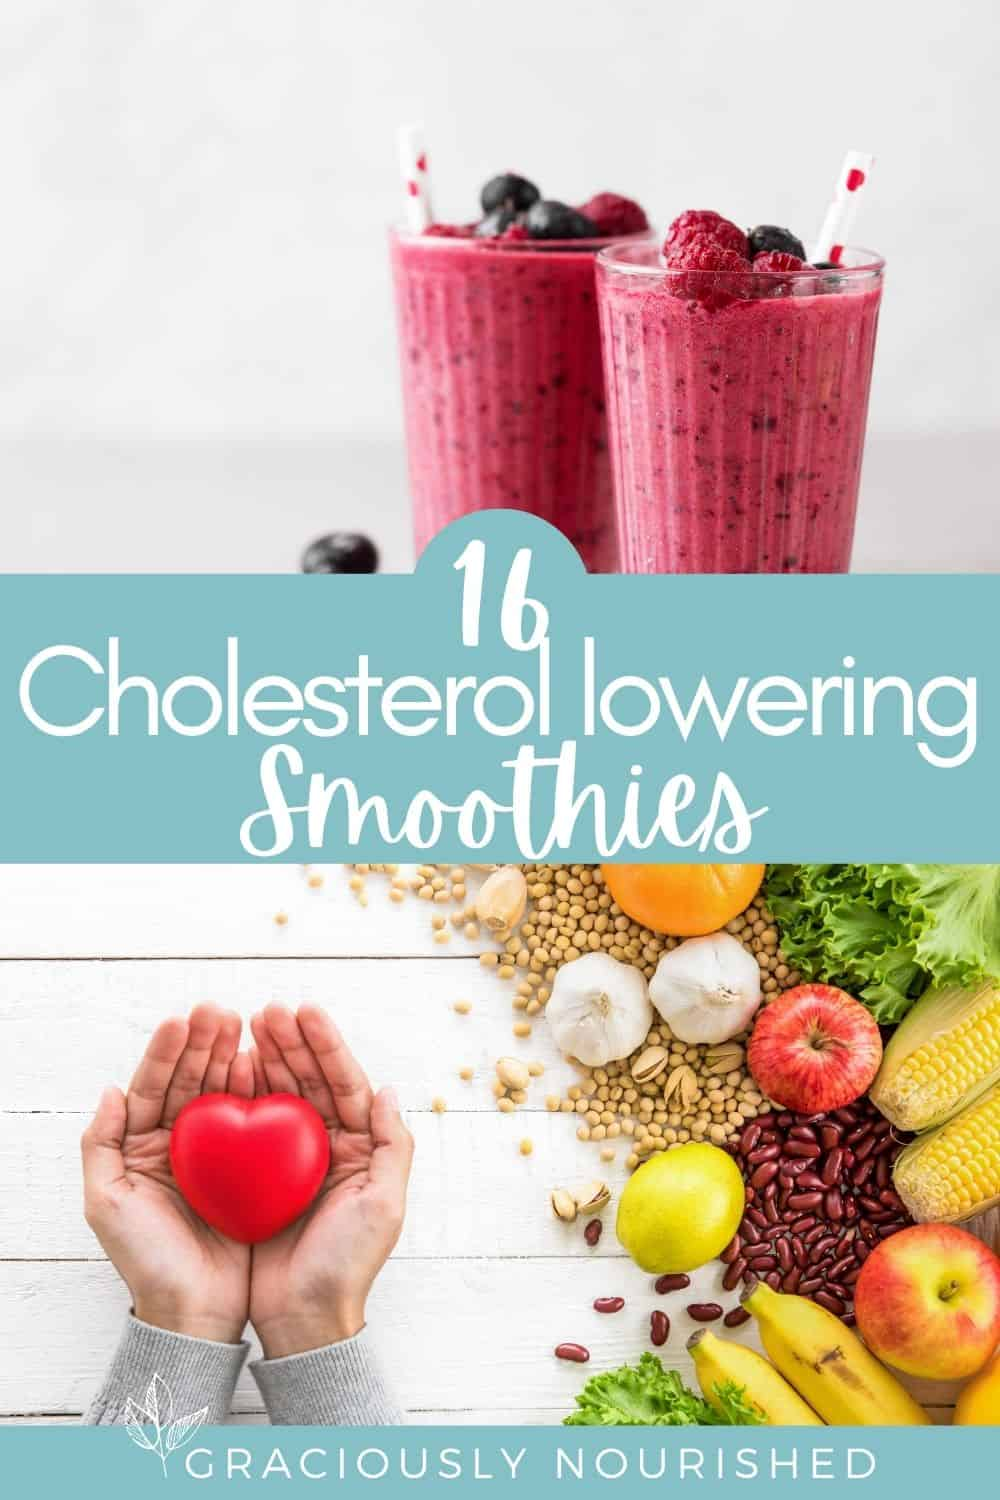 Image for Pinterest: 16 Cholesterol Lowering Smoothies. Top image is two blueberry smoothies and bottom image: woman's hands holding a heart with fruits, vegetables, beans and seeds next to them.